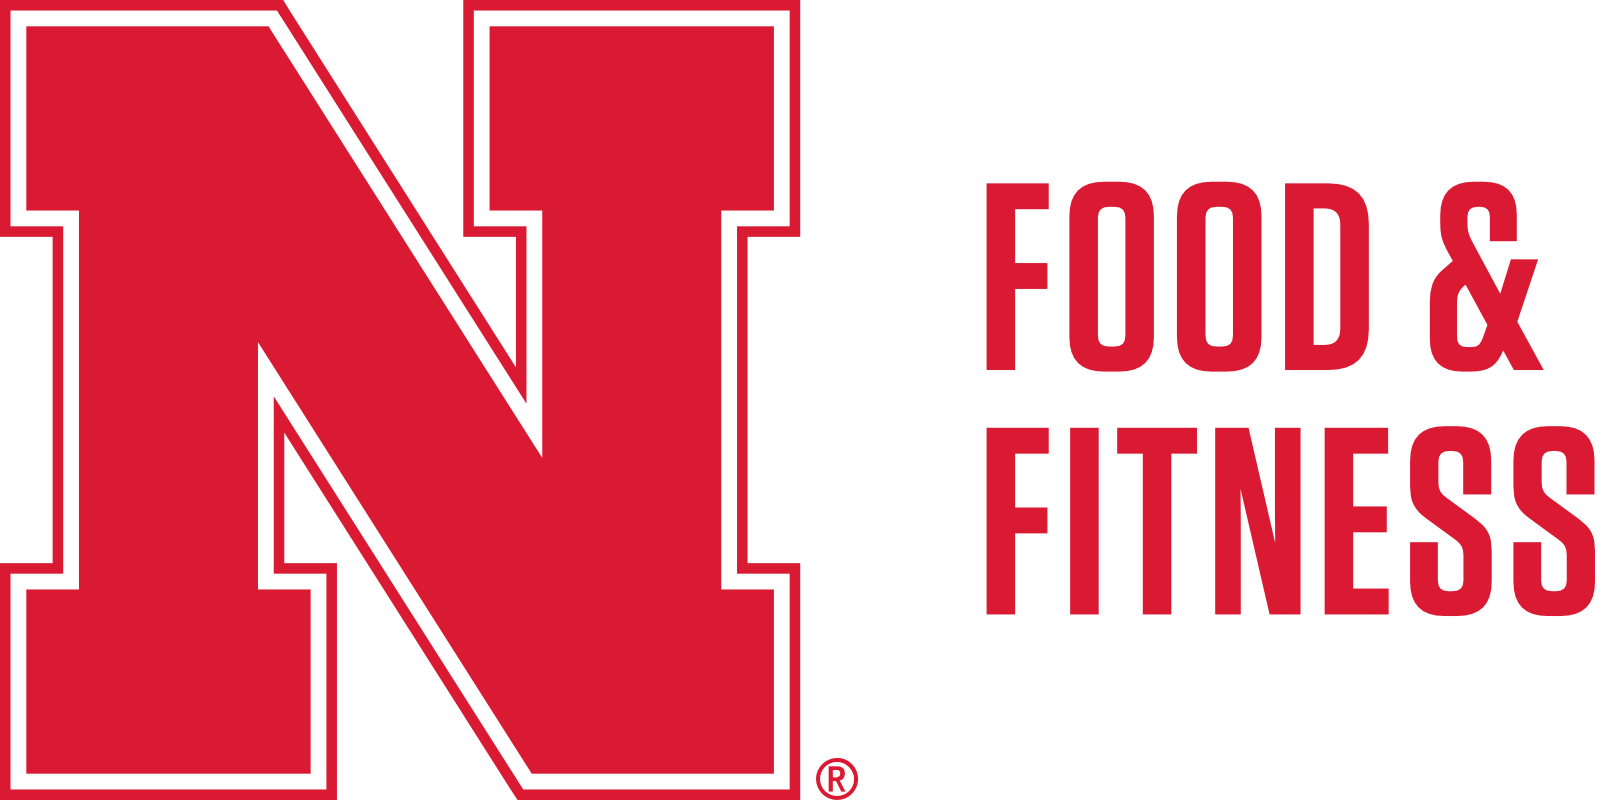 UNL Extension Food & Fitness Image